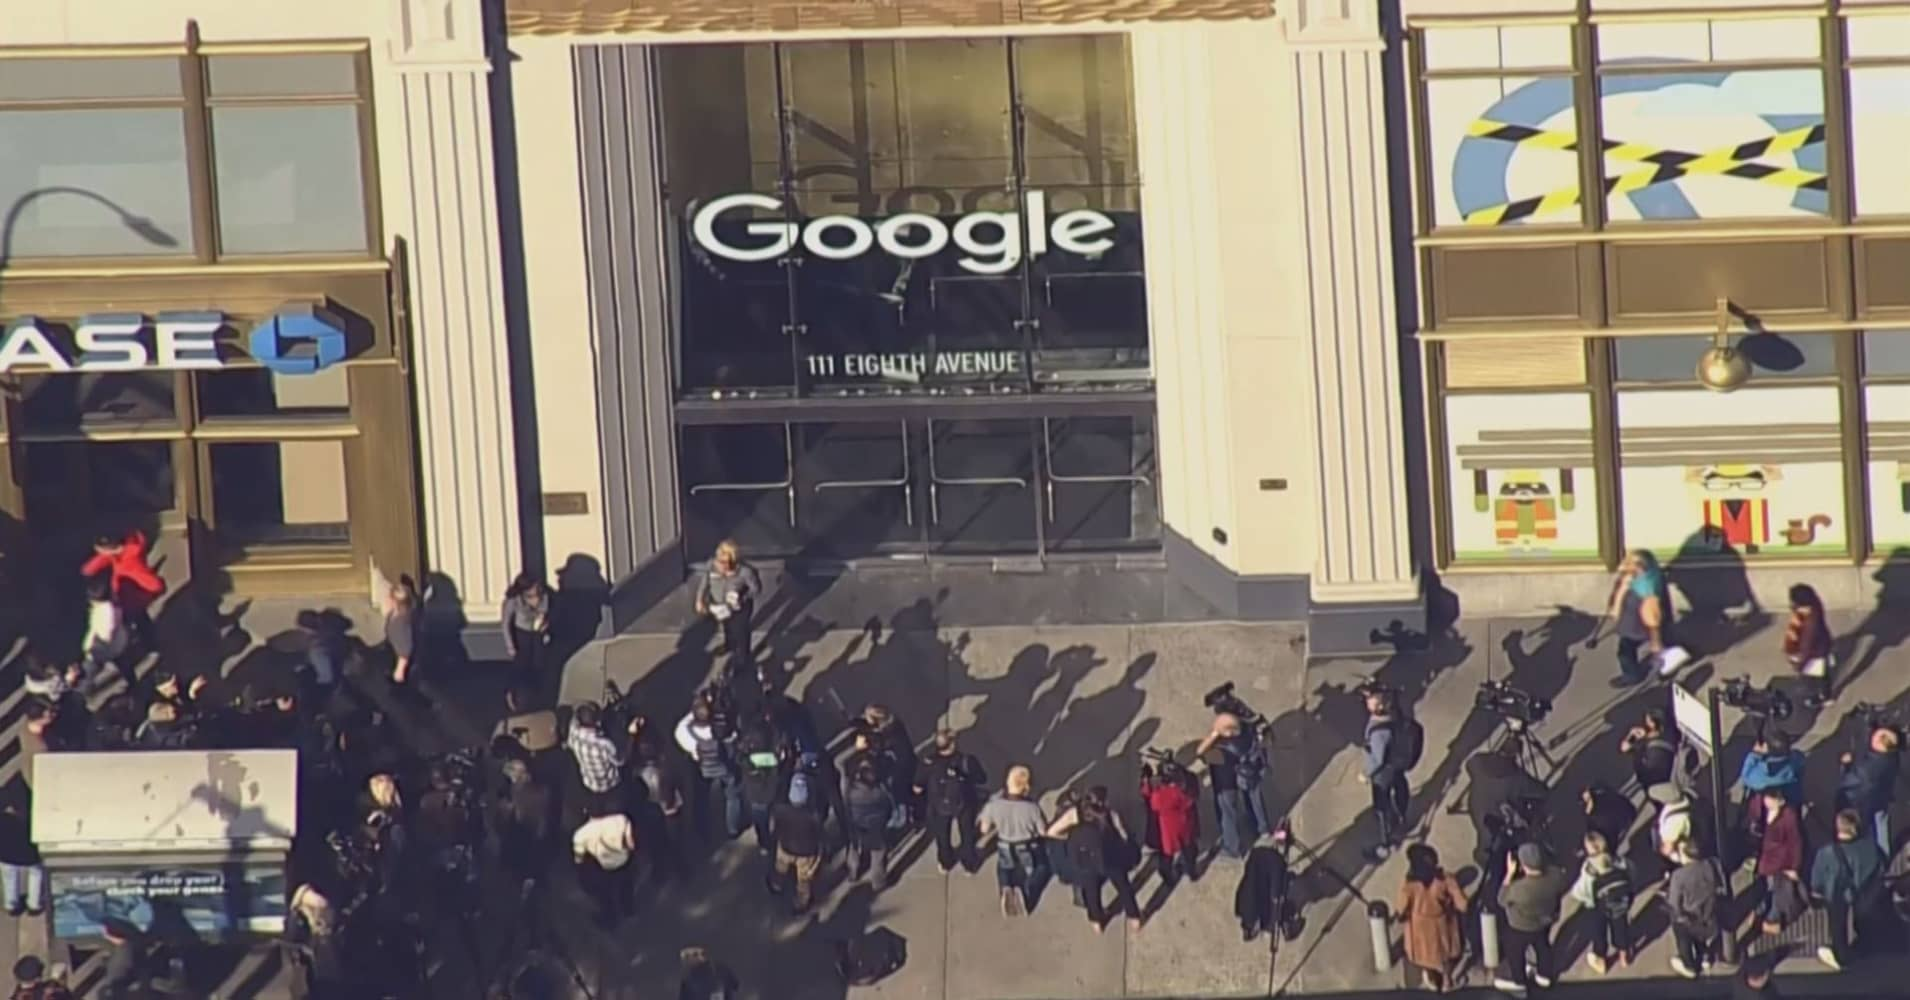 Google CEO on employee walkouts: 'Moments like this show that we didn't always get it right'